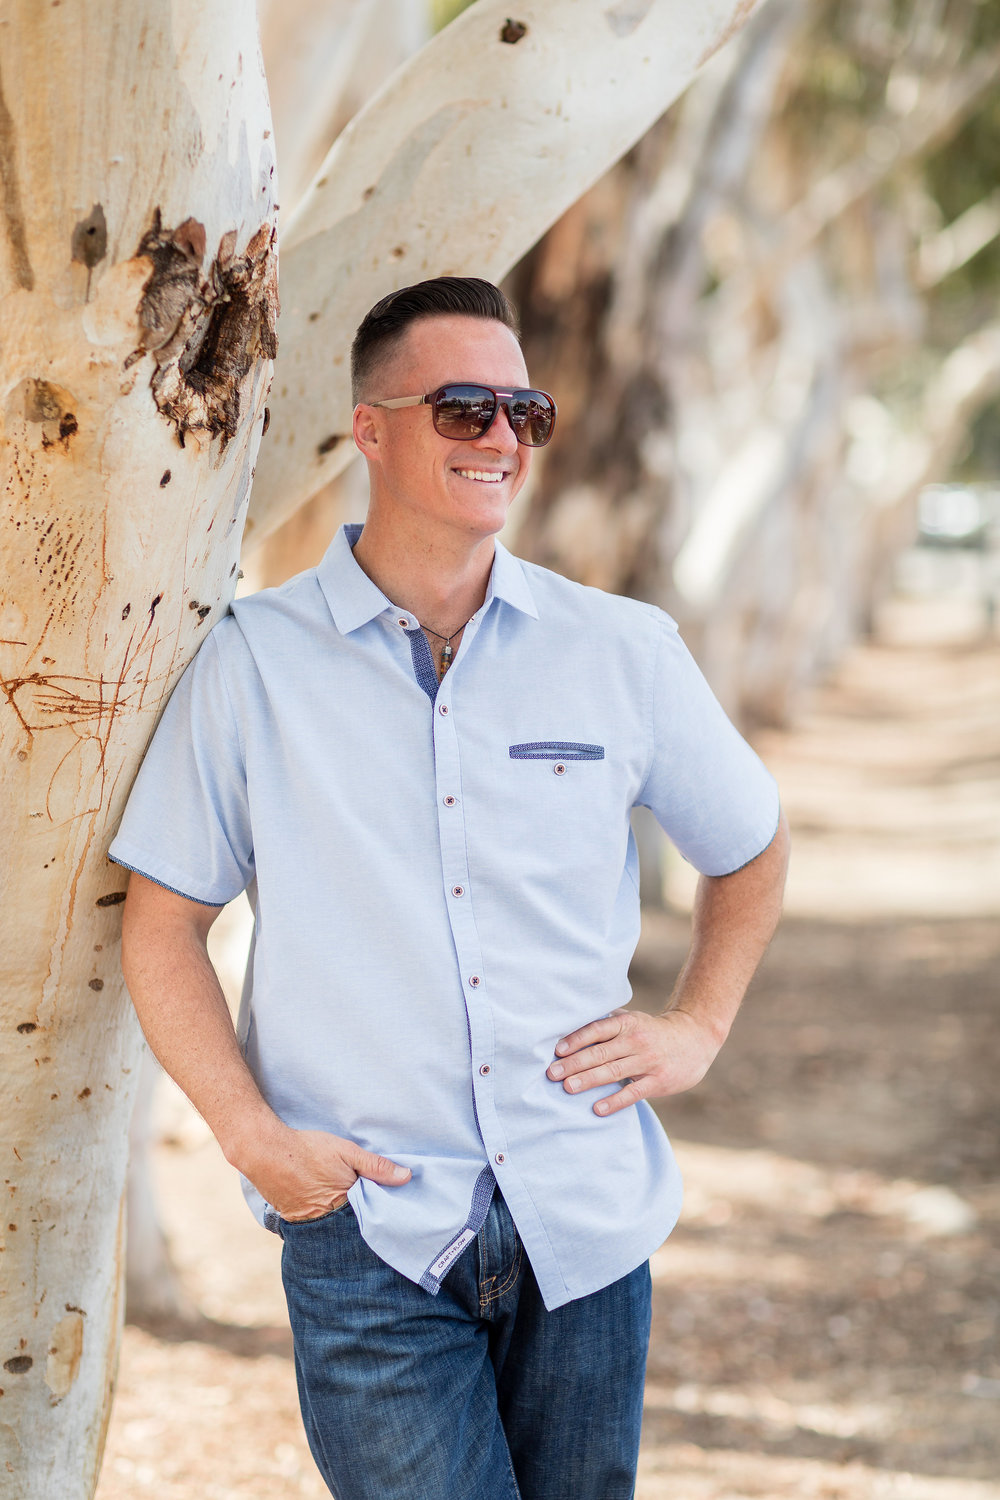 HB portrait of adult male standing by tree with sunglasses and a blue shirt.jpg